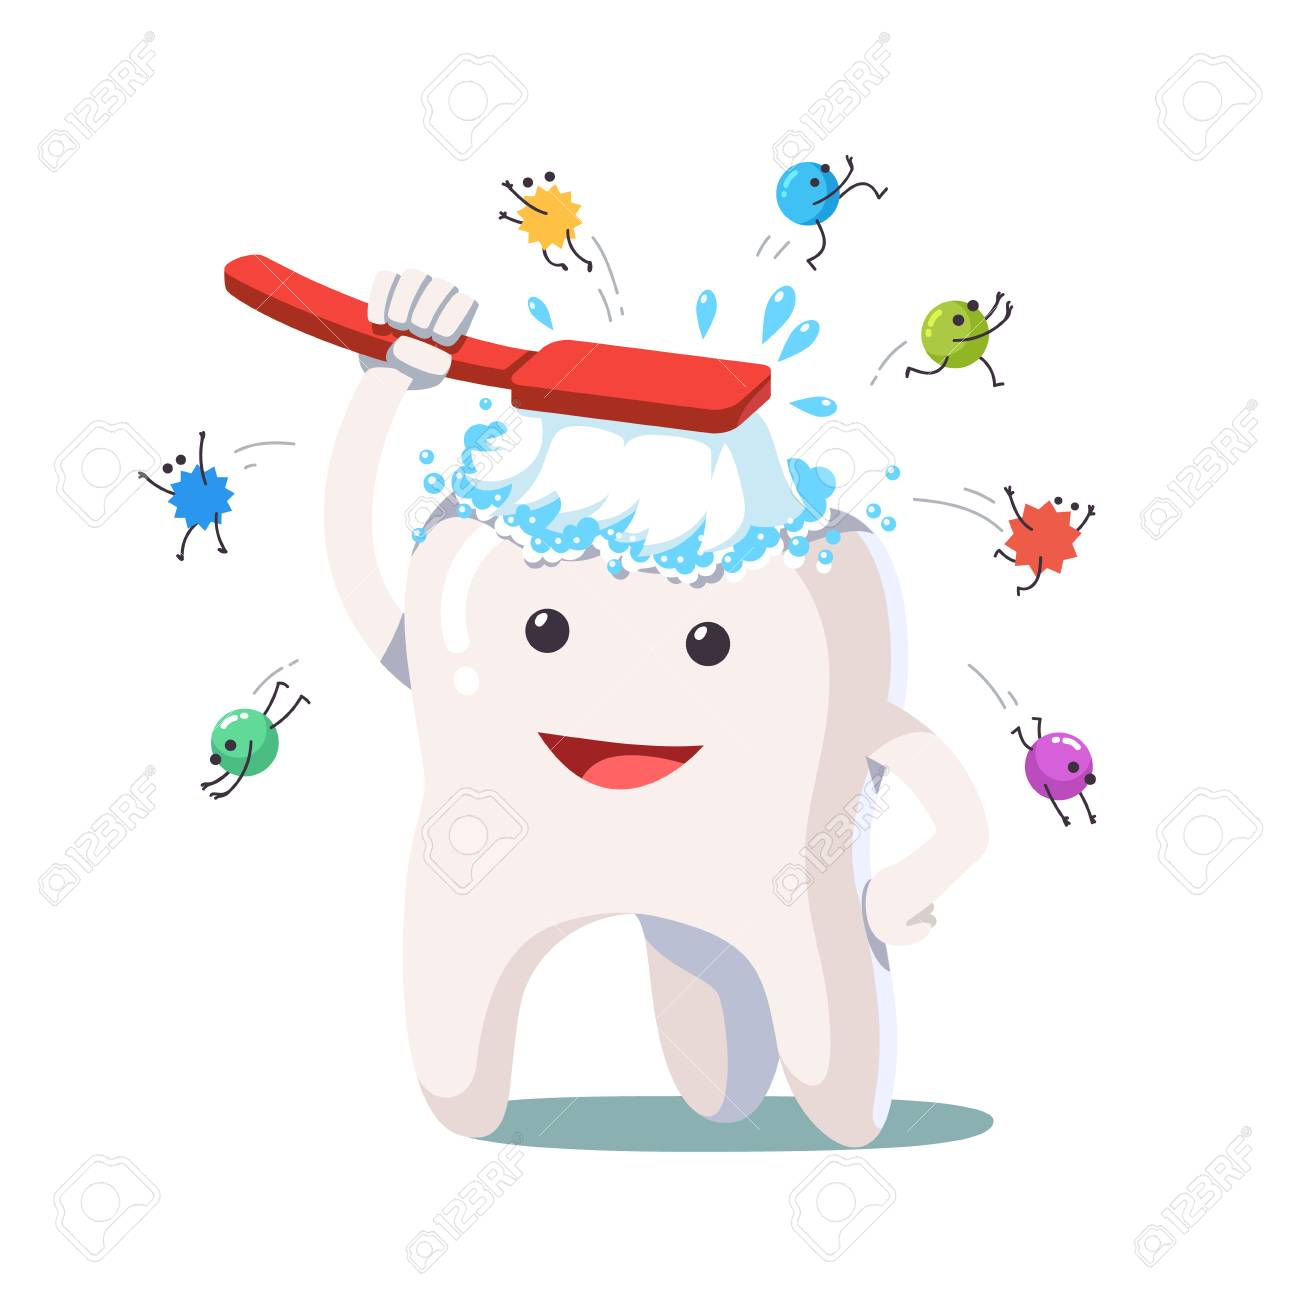 Happy white tooth brushing himself with toothbrush - 83886887